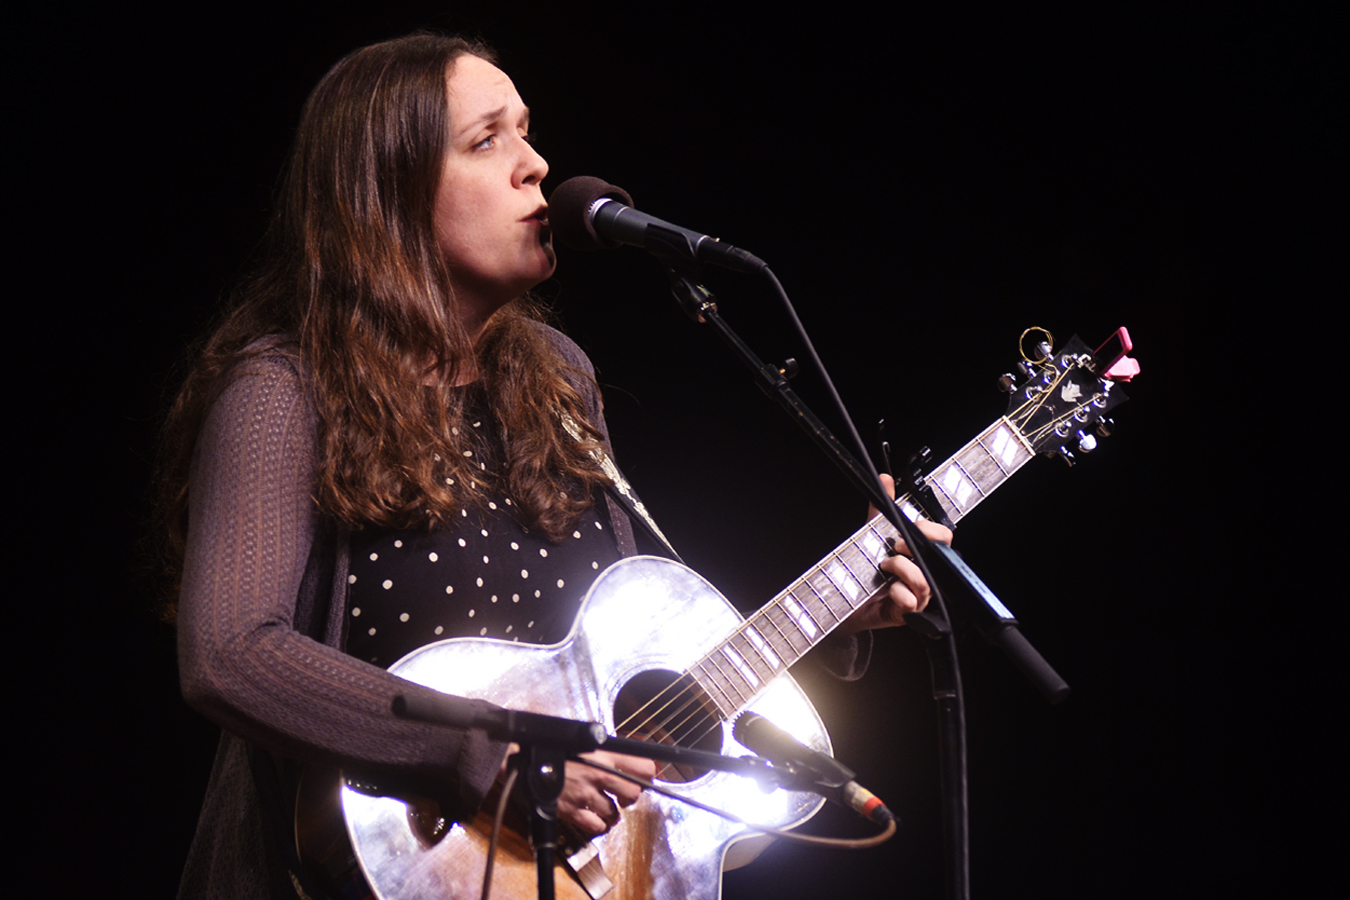 Her first full-length album, Lucy, was released in 2010.